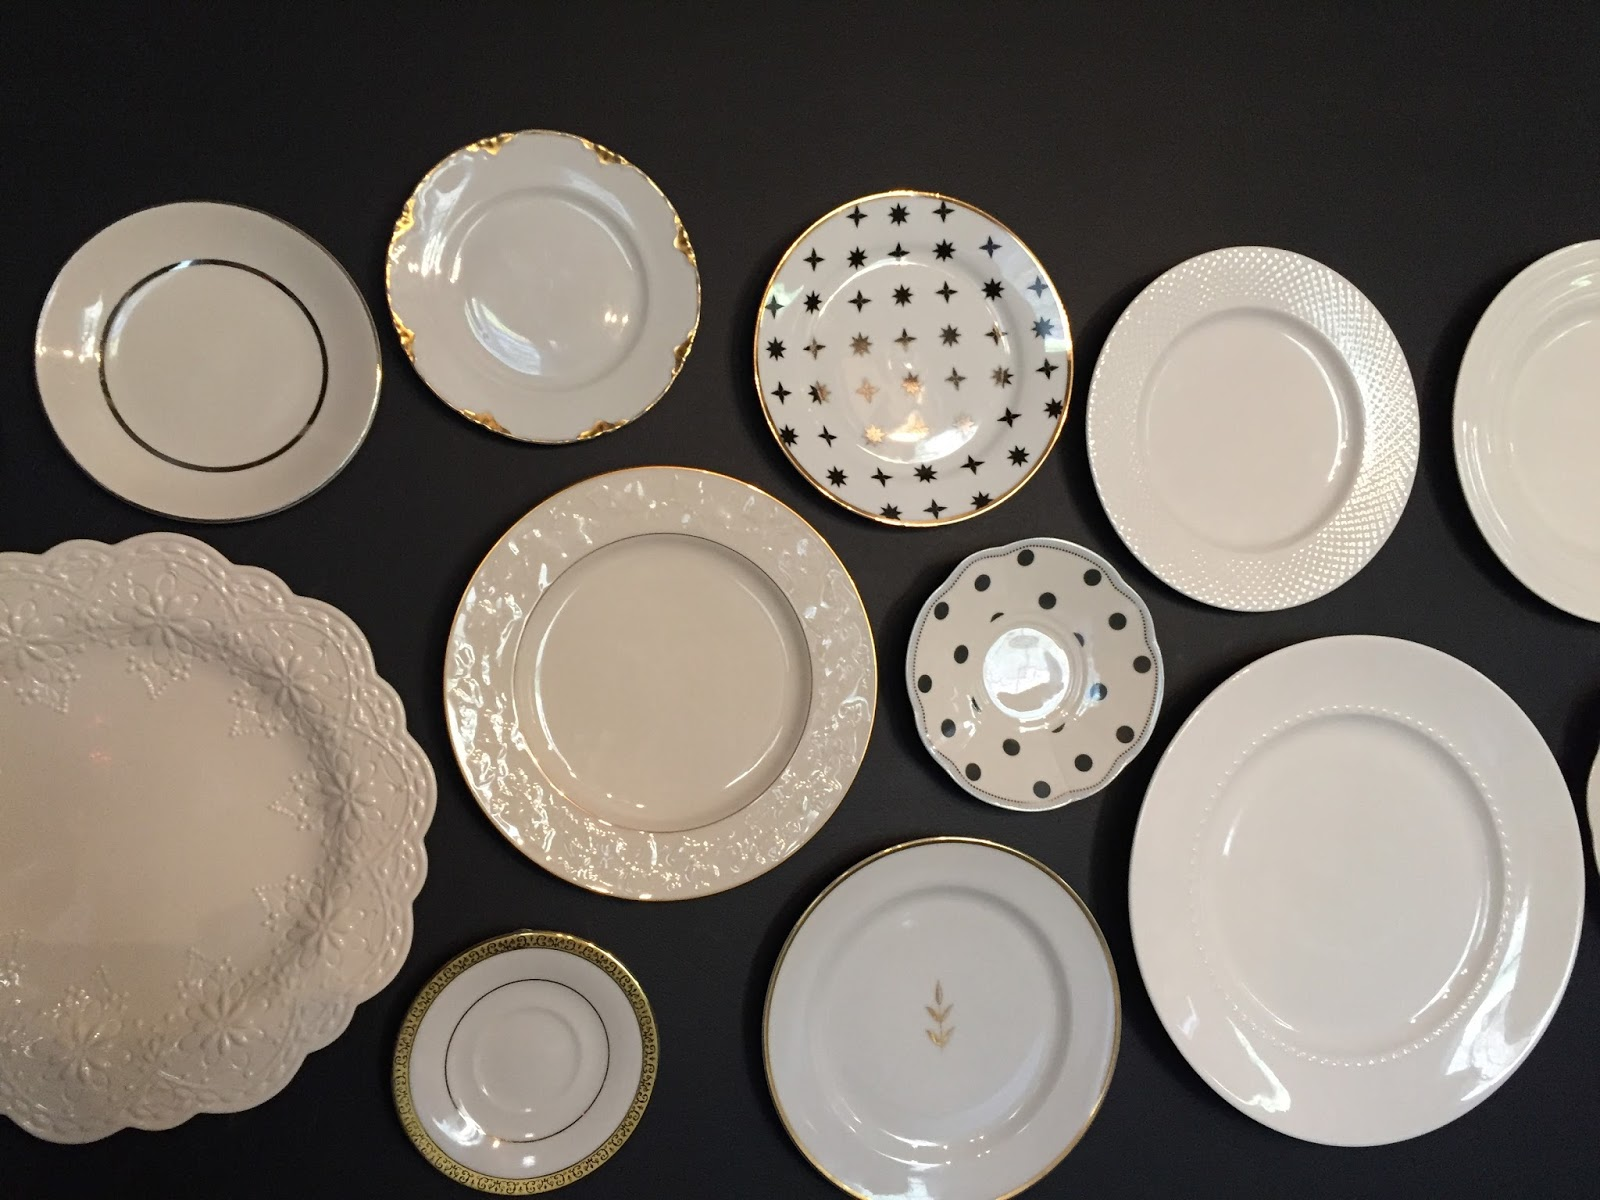 My plates came from all kinds of different plates thrift shops & DIY Wall of Plates \u2014 Karen Ehman